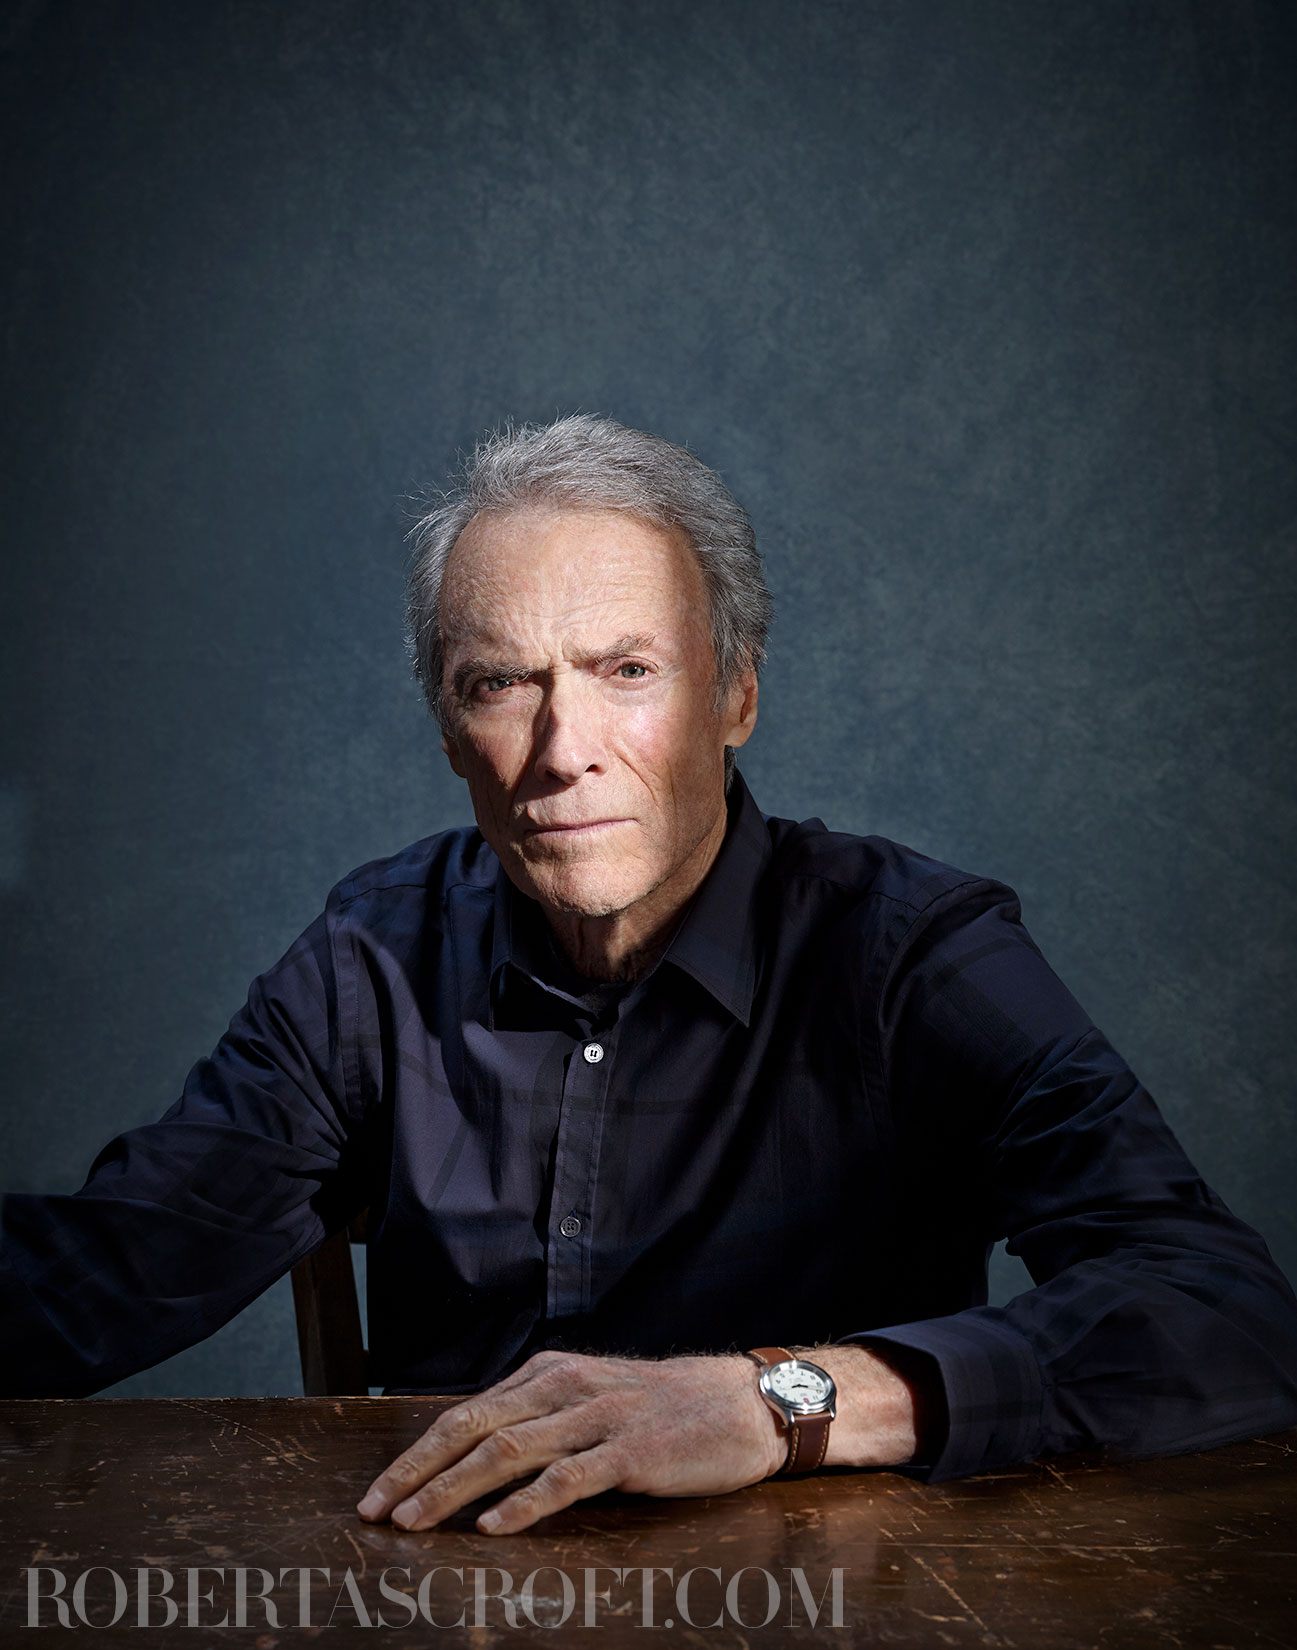 CLint-Eastwood-by-Robert-Ascroft-01